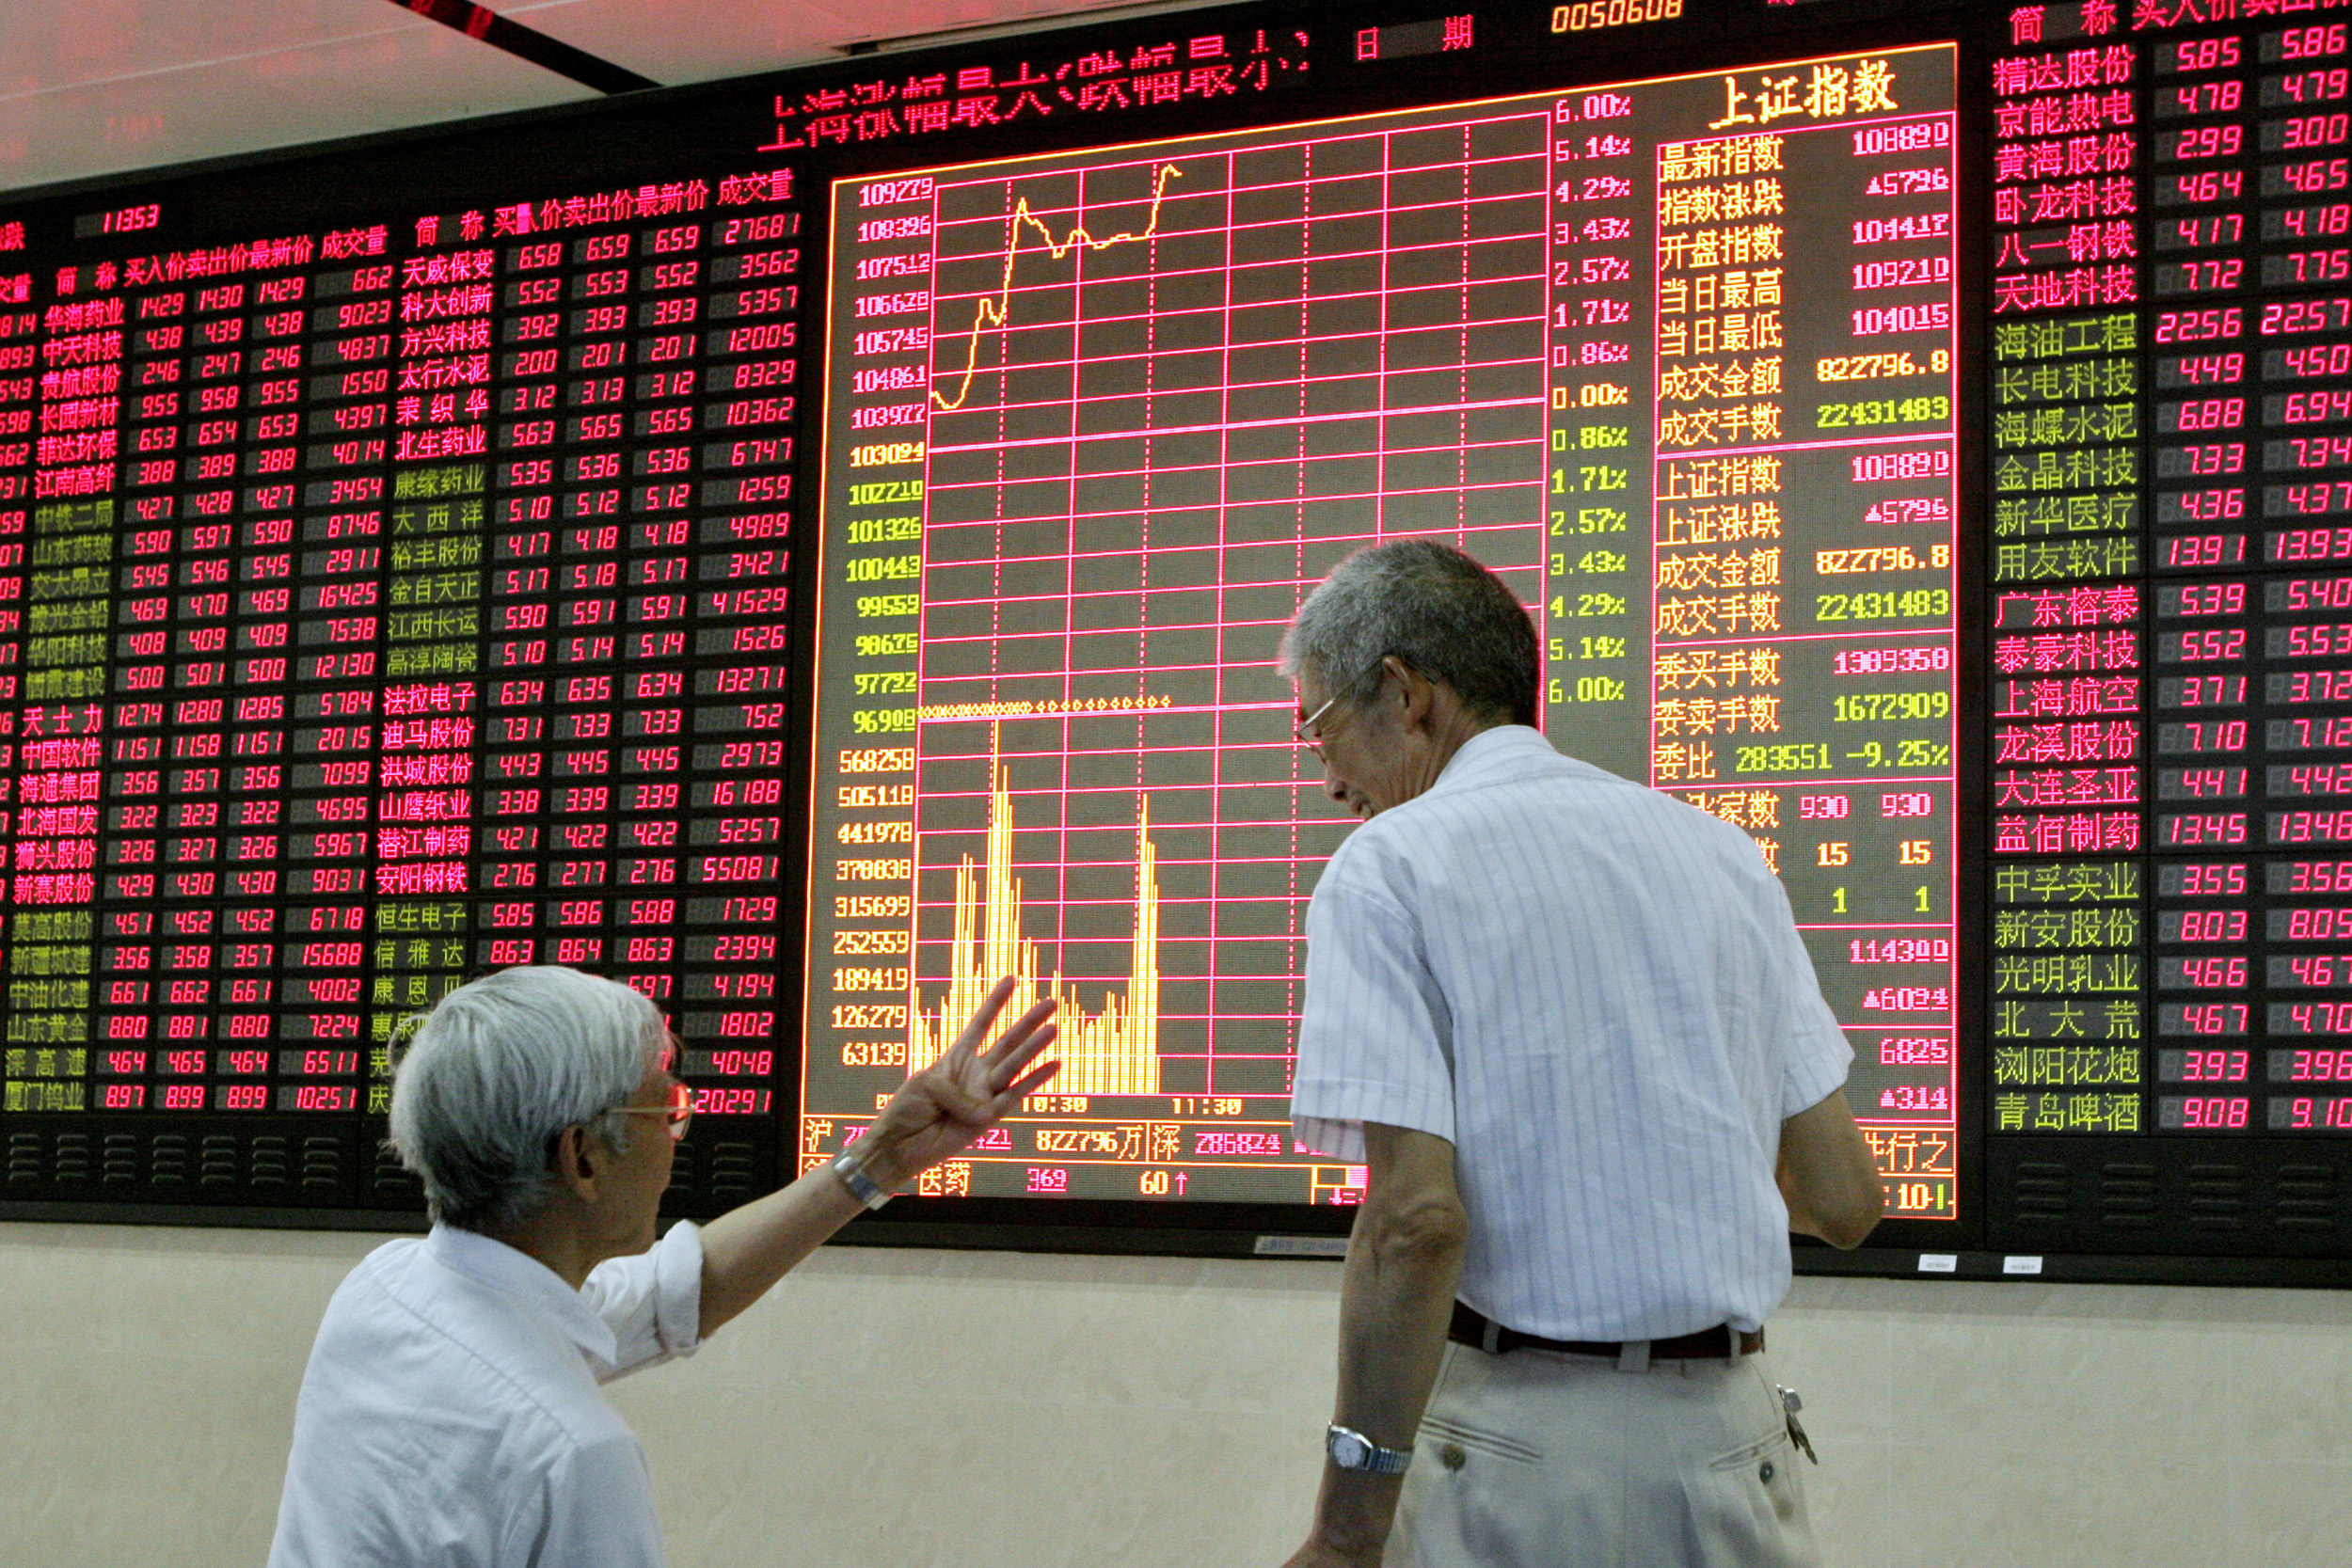 2 Chinese investors talk to each other in a stock trade floor in Shanghai, China on 08 June 2005.(Photo by Kevin Lee/Bloomberg News)